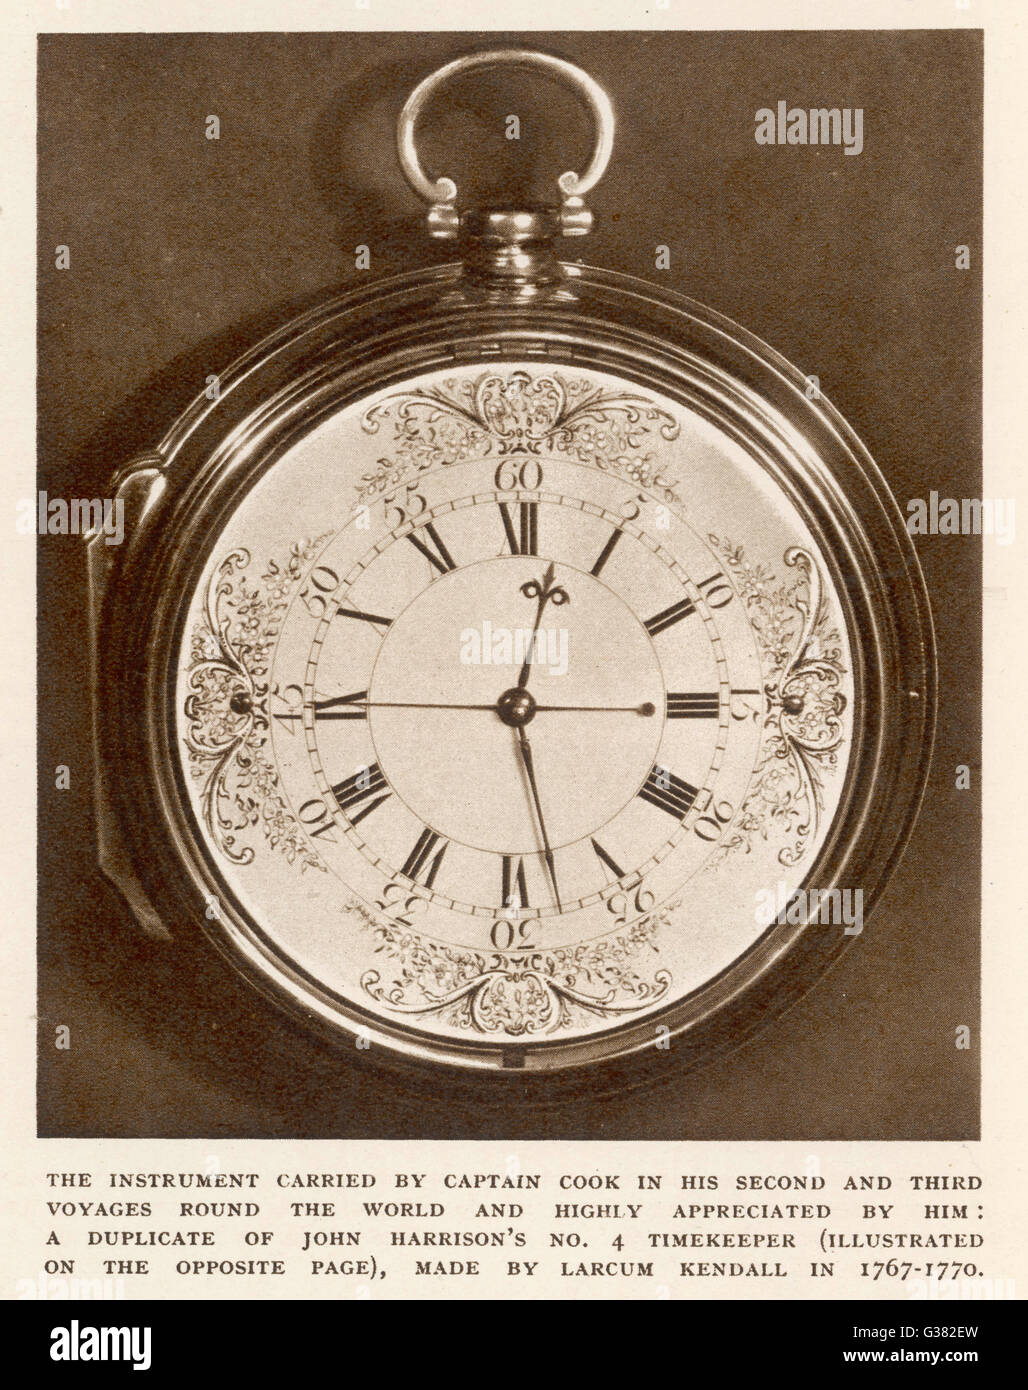 Duplicate of John Harrison's number 4 timekeeper, made by  Larcum Kendall and taken by  Captain Cook on his - Stock Image